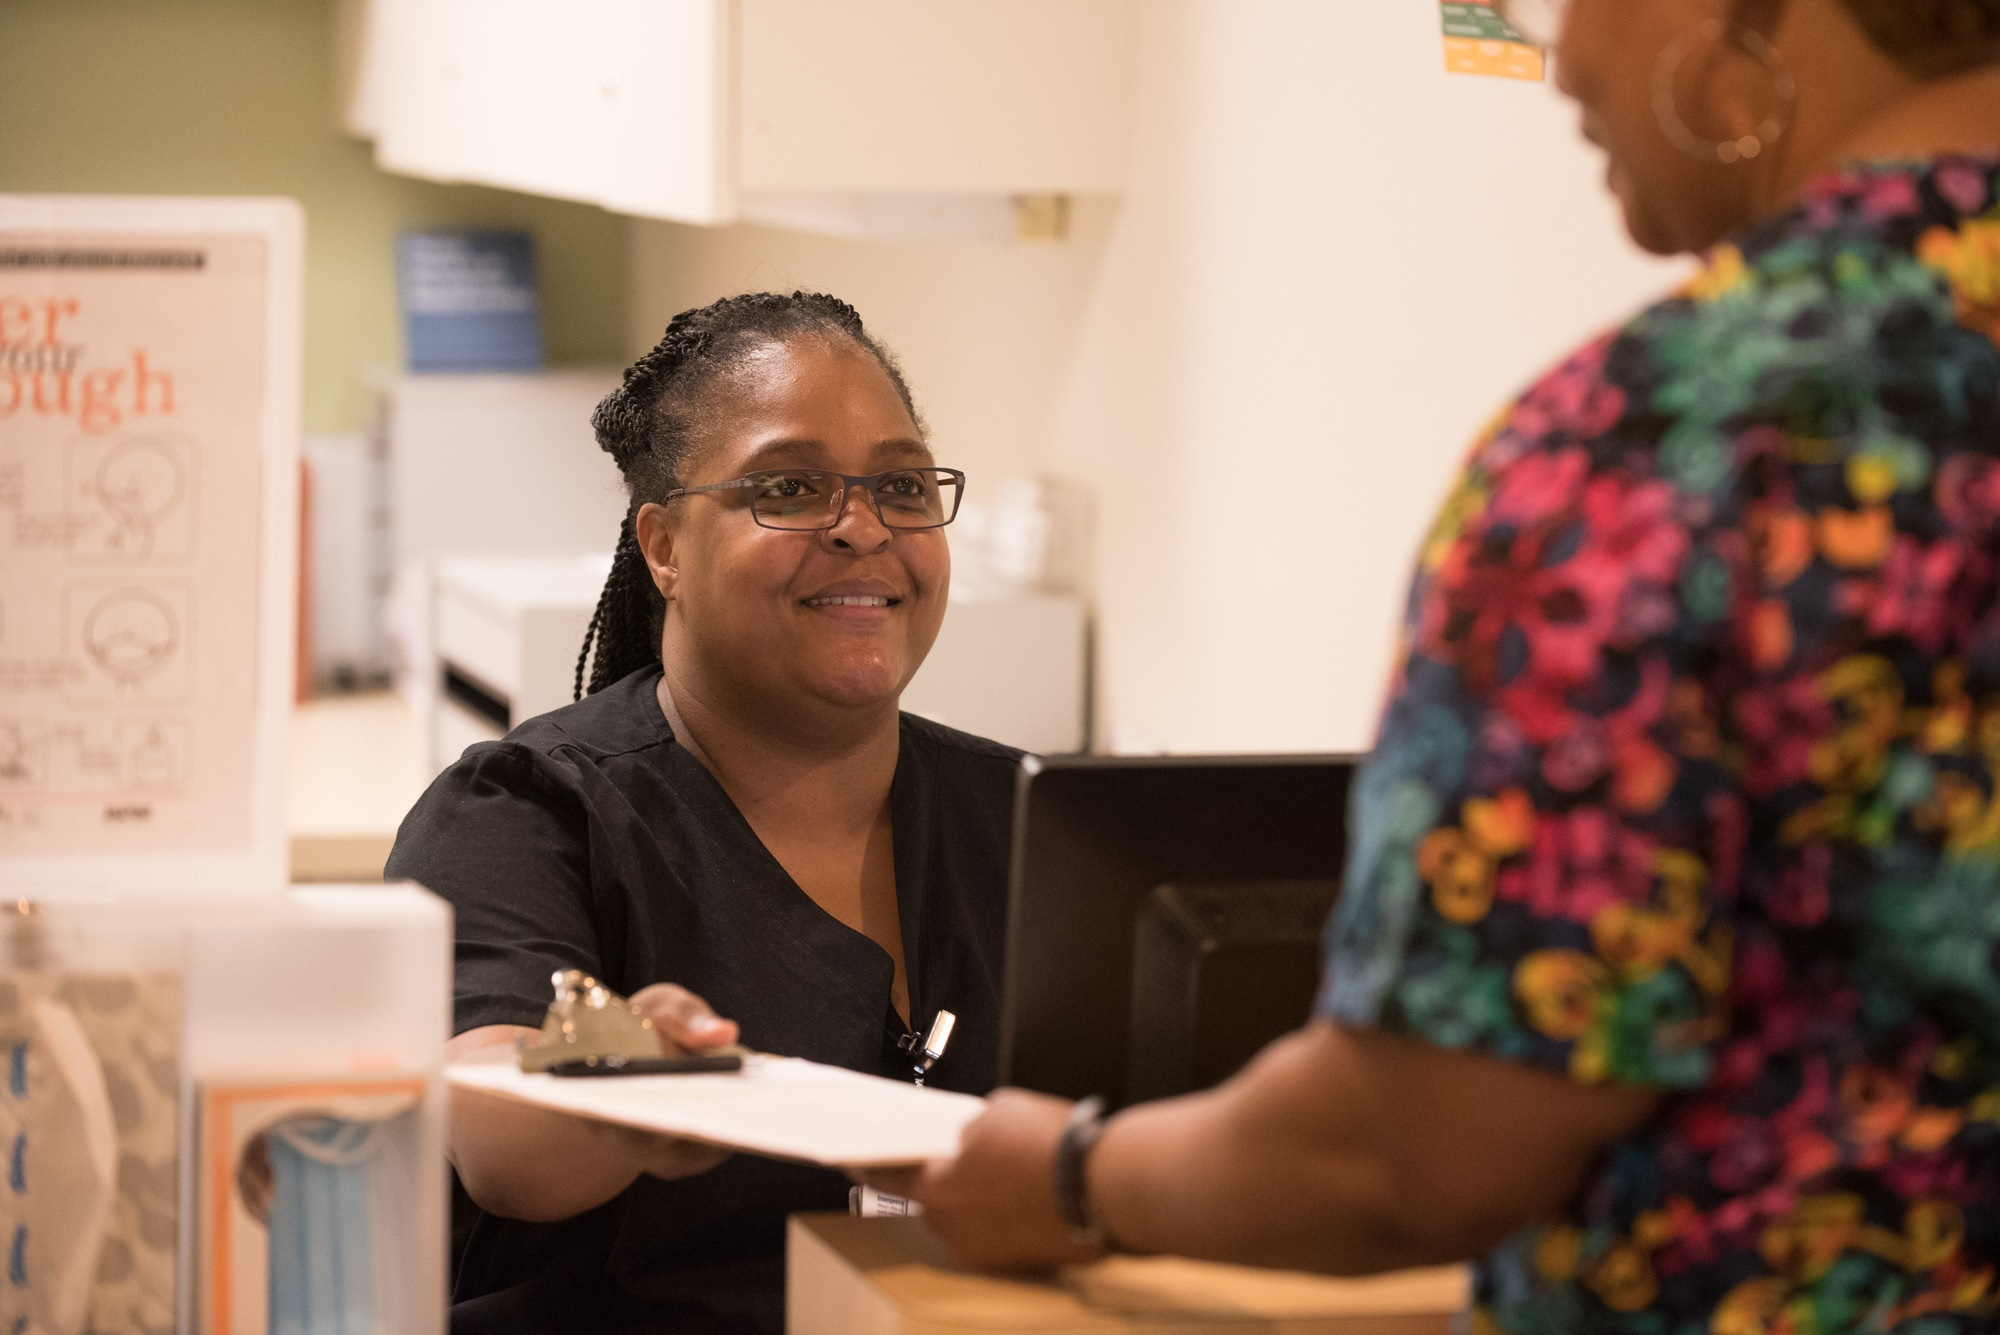 Receptionist checking in a patient for her appointment